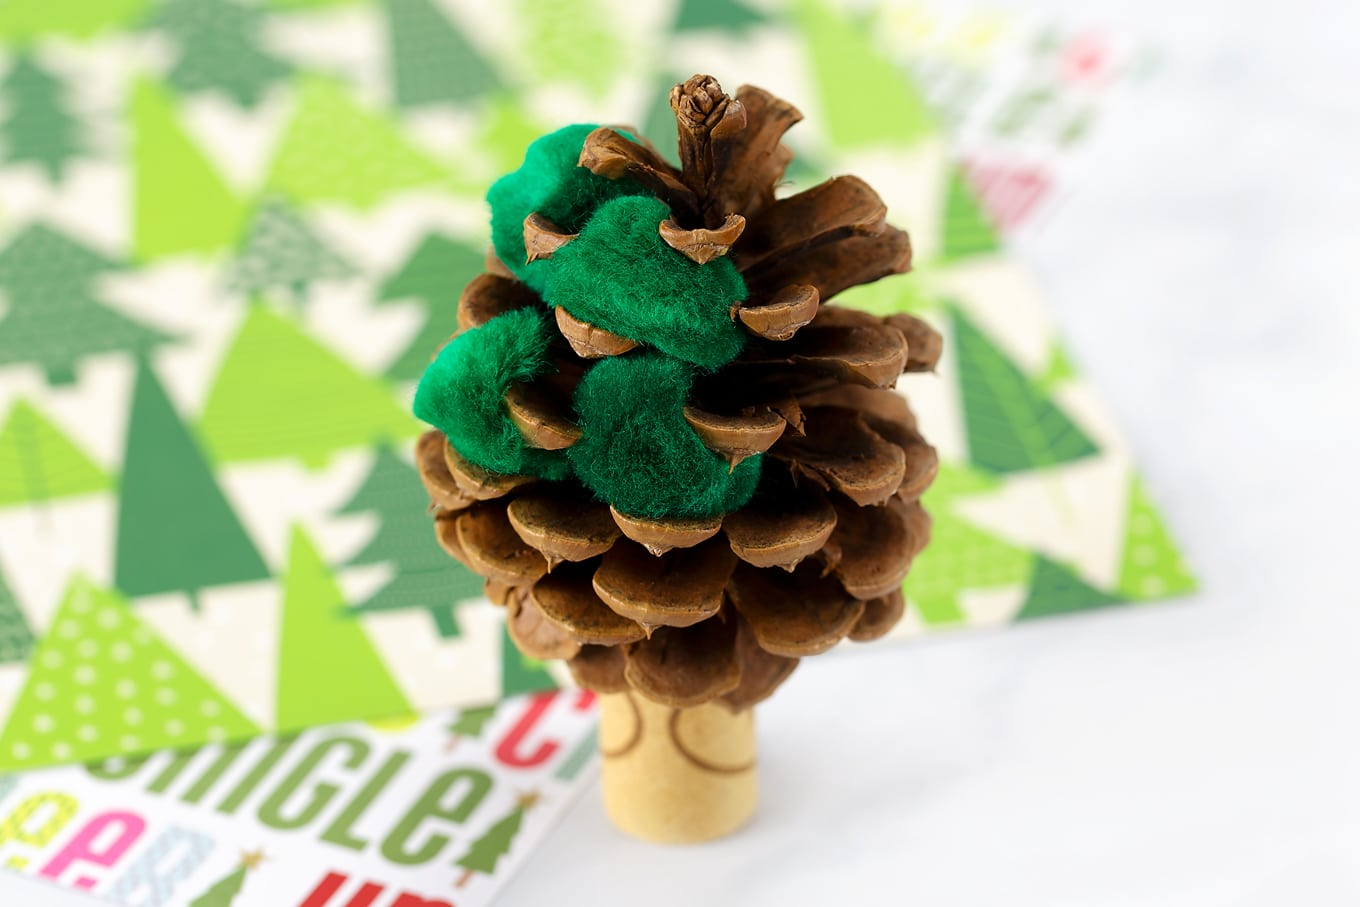 Putting Green Pompoms into the Pine Cone